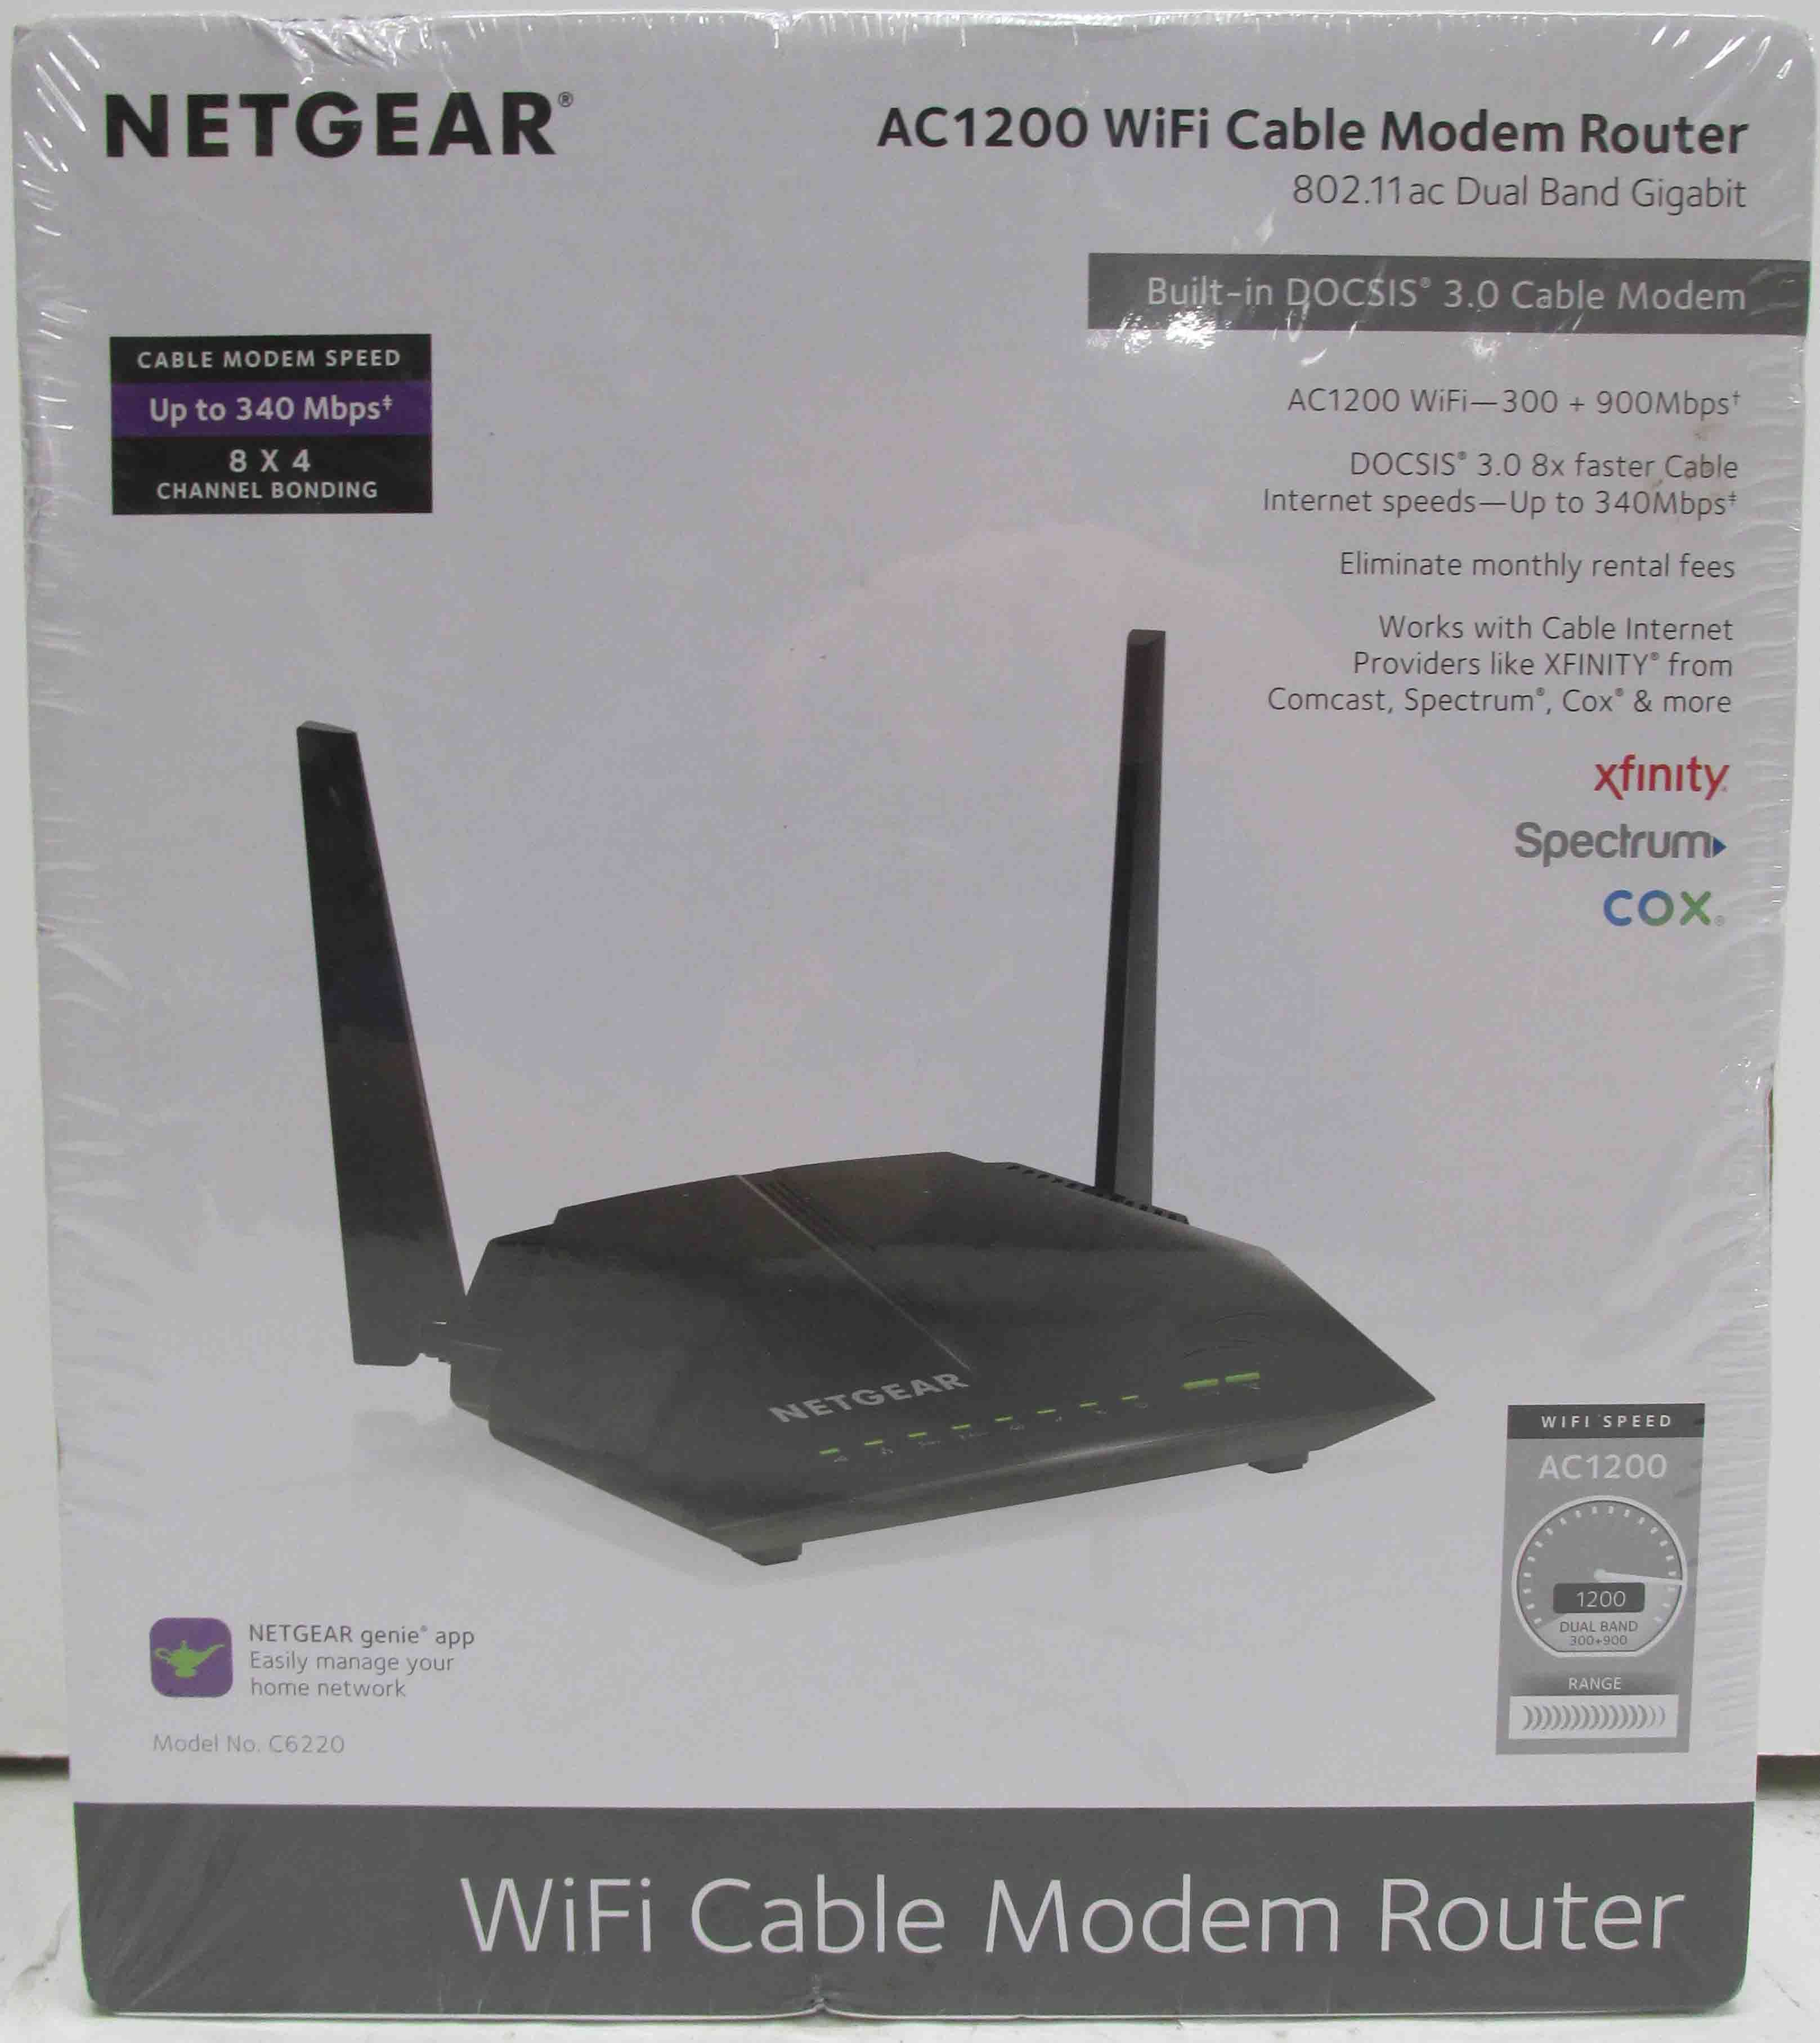 Netgear AC1200 WiFi Cable Modem Router Model No. C6220  -  NEW IN BOX